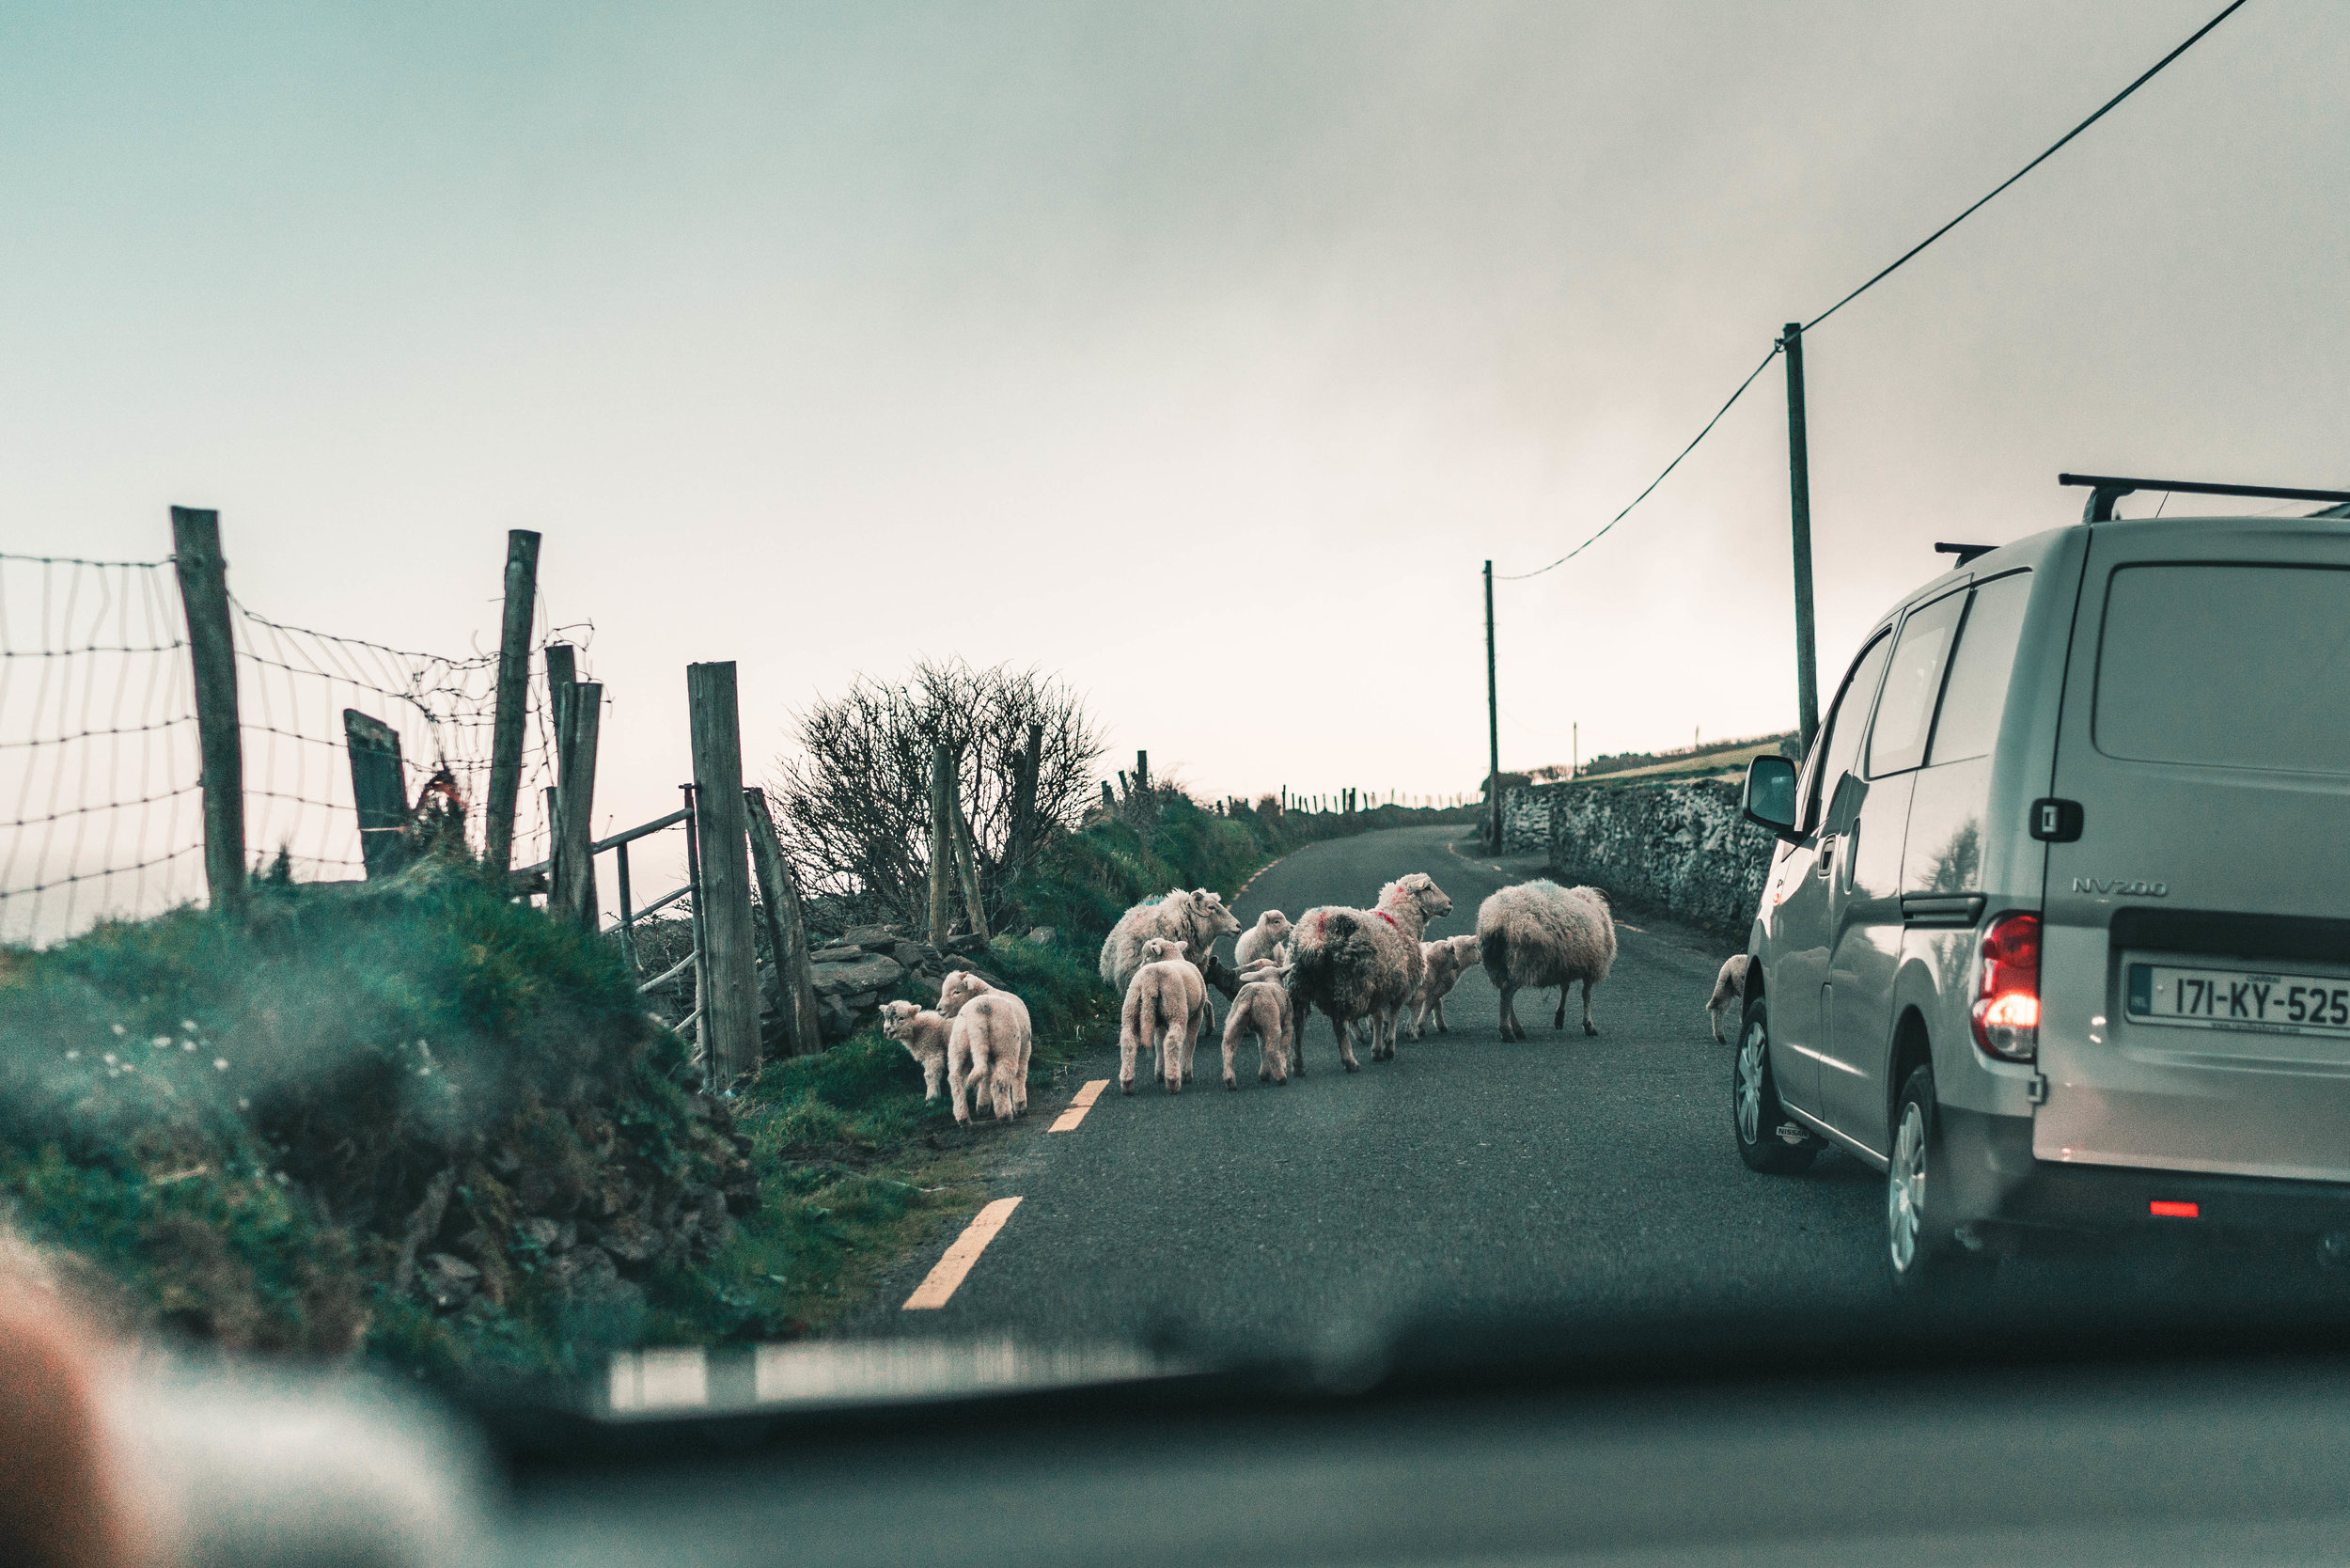 sheep+ireland+dingle+peninsula+road+trip+must+see+visit